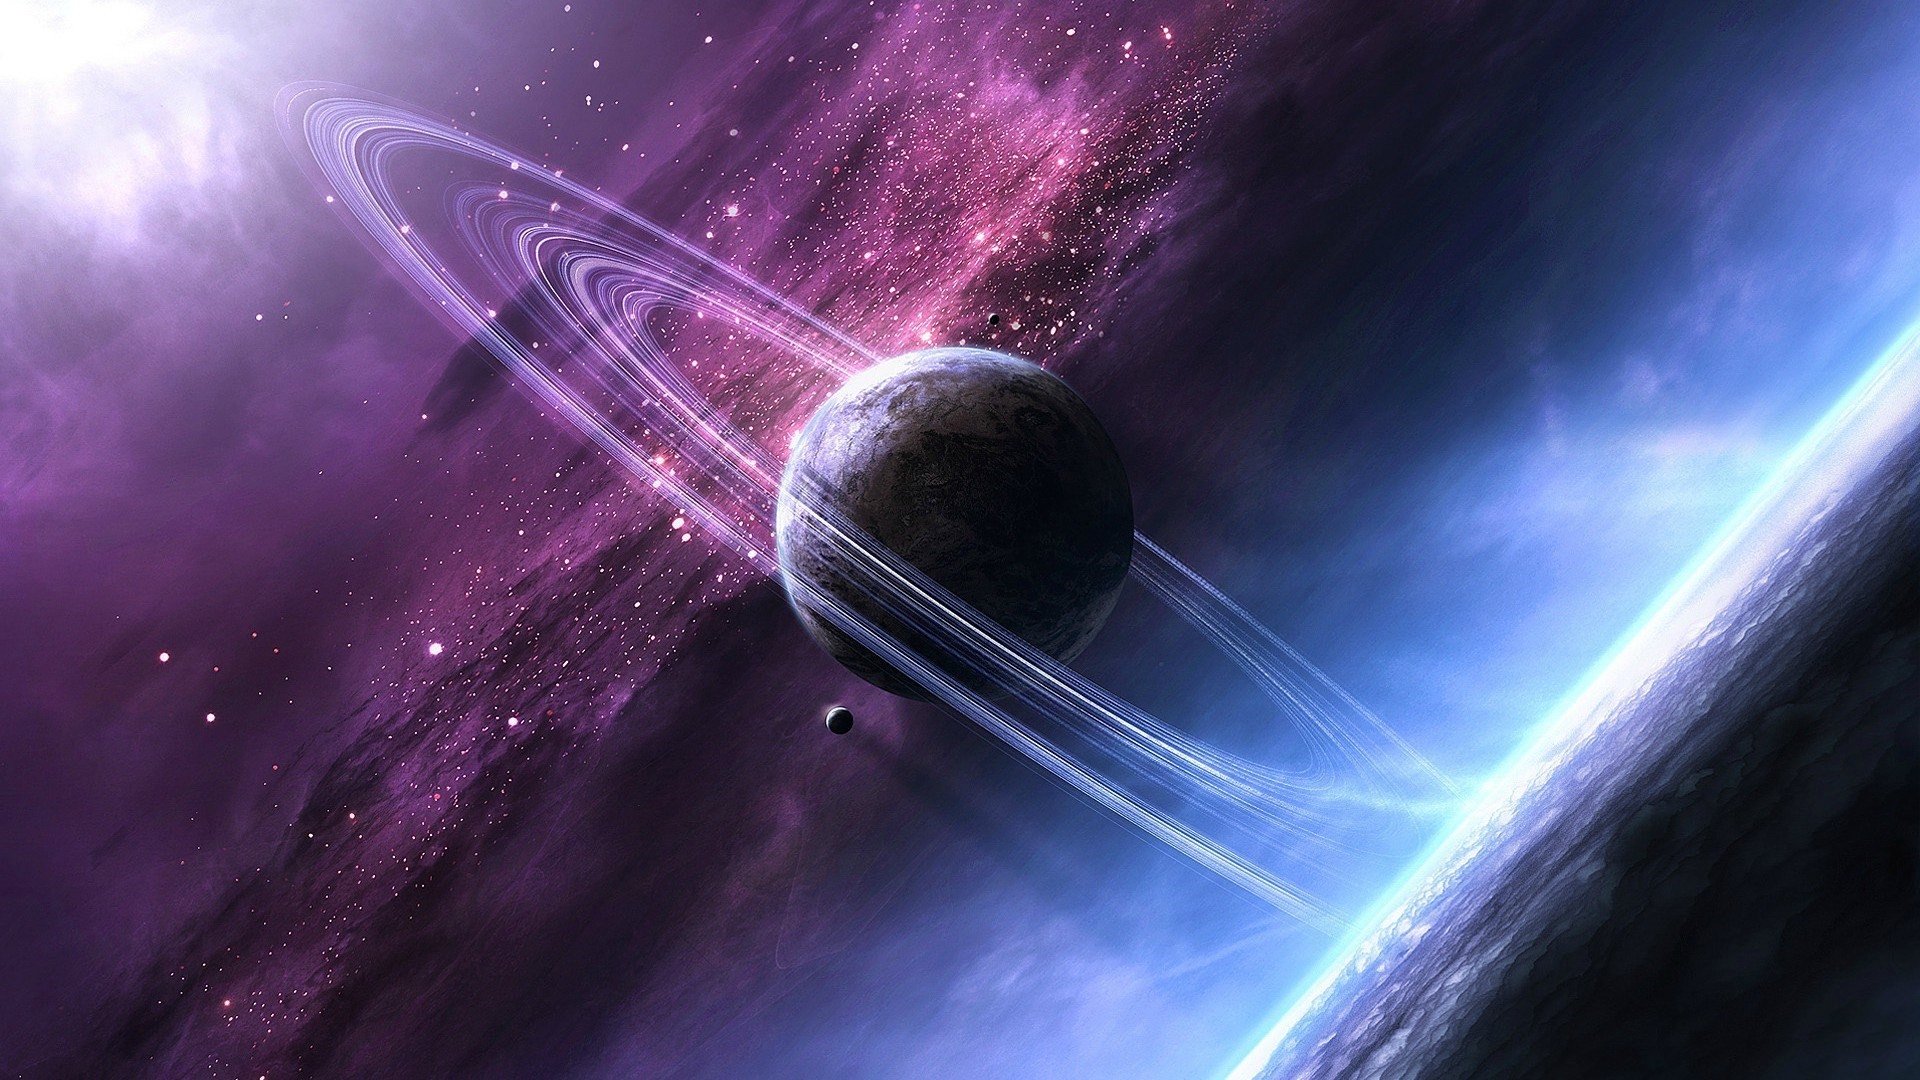 Planets in the solar system have planets such as Jupiter, Saturn, Uranus,  and neptune.